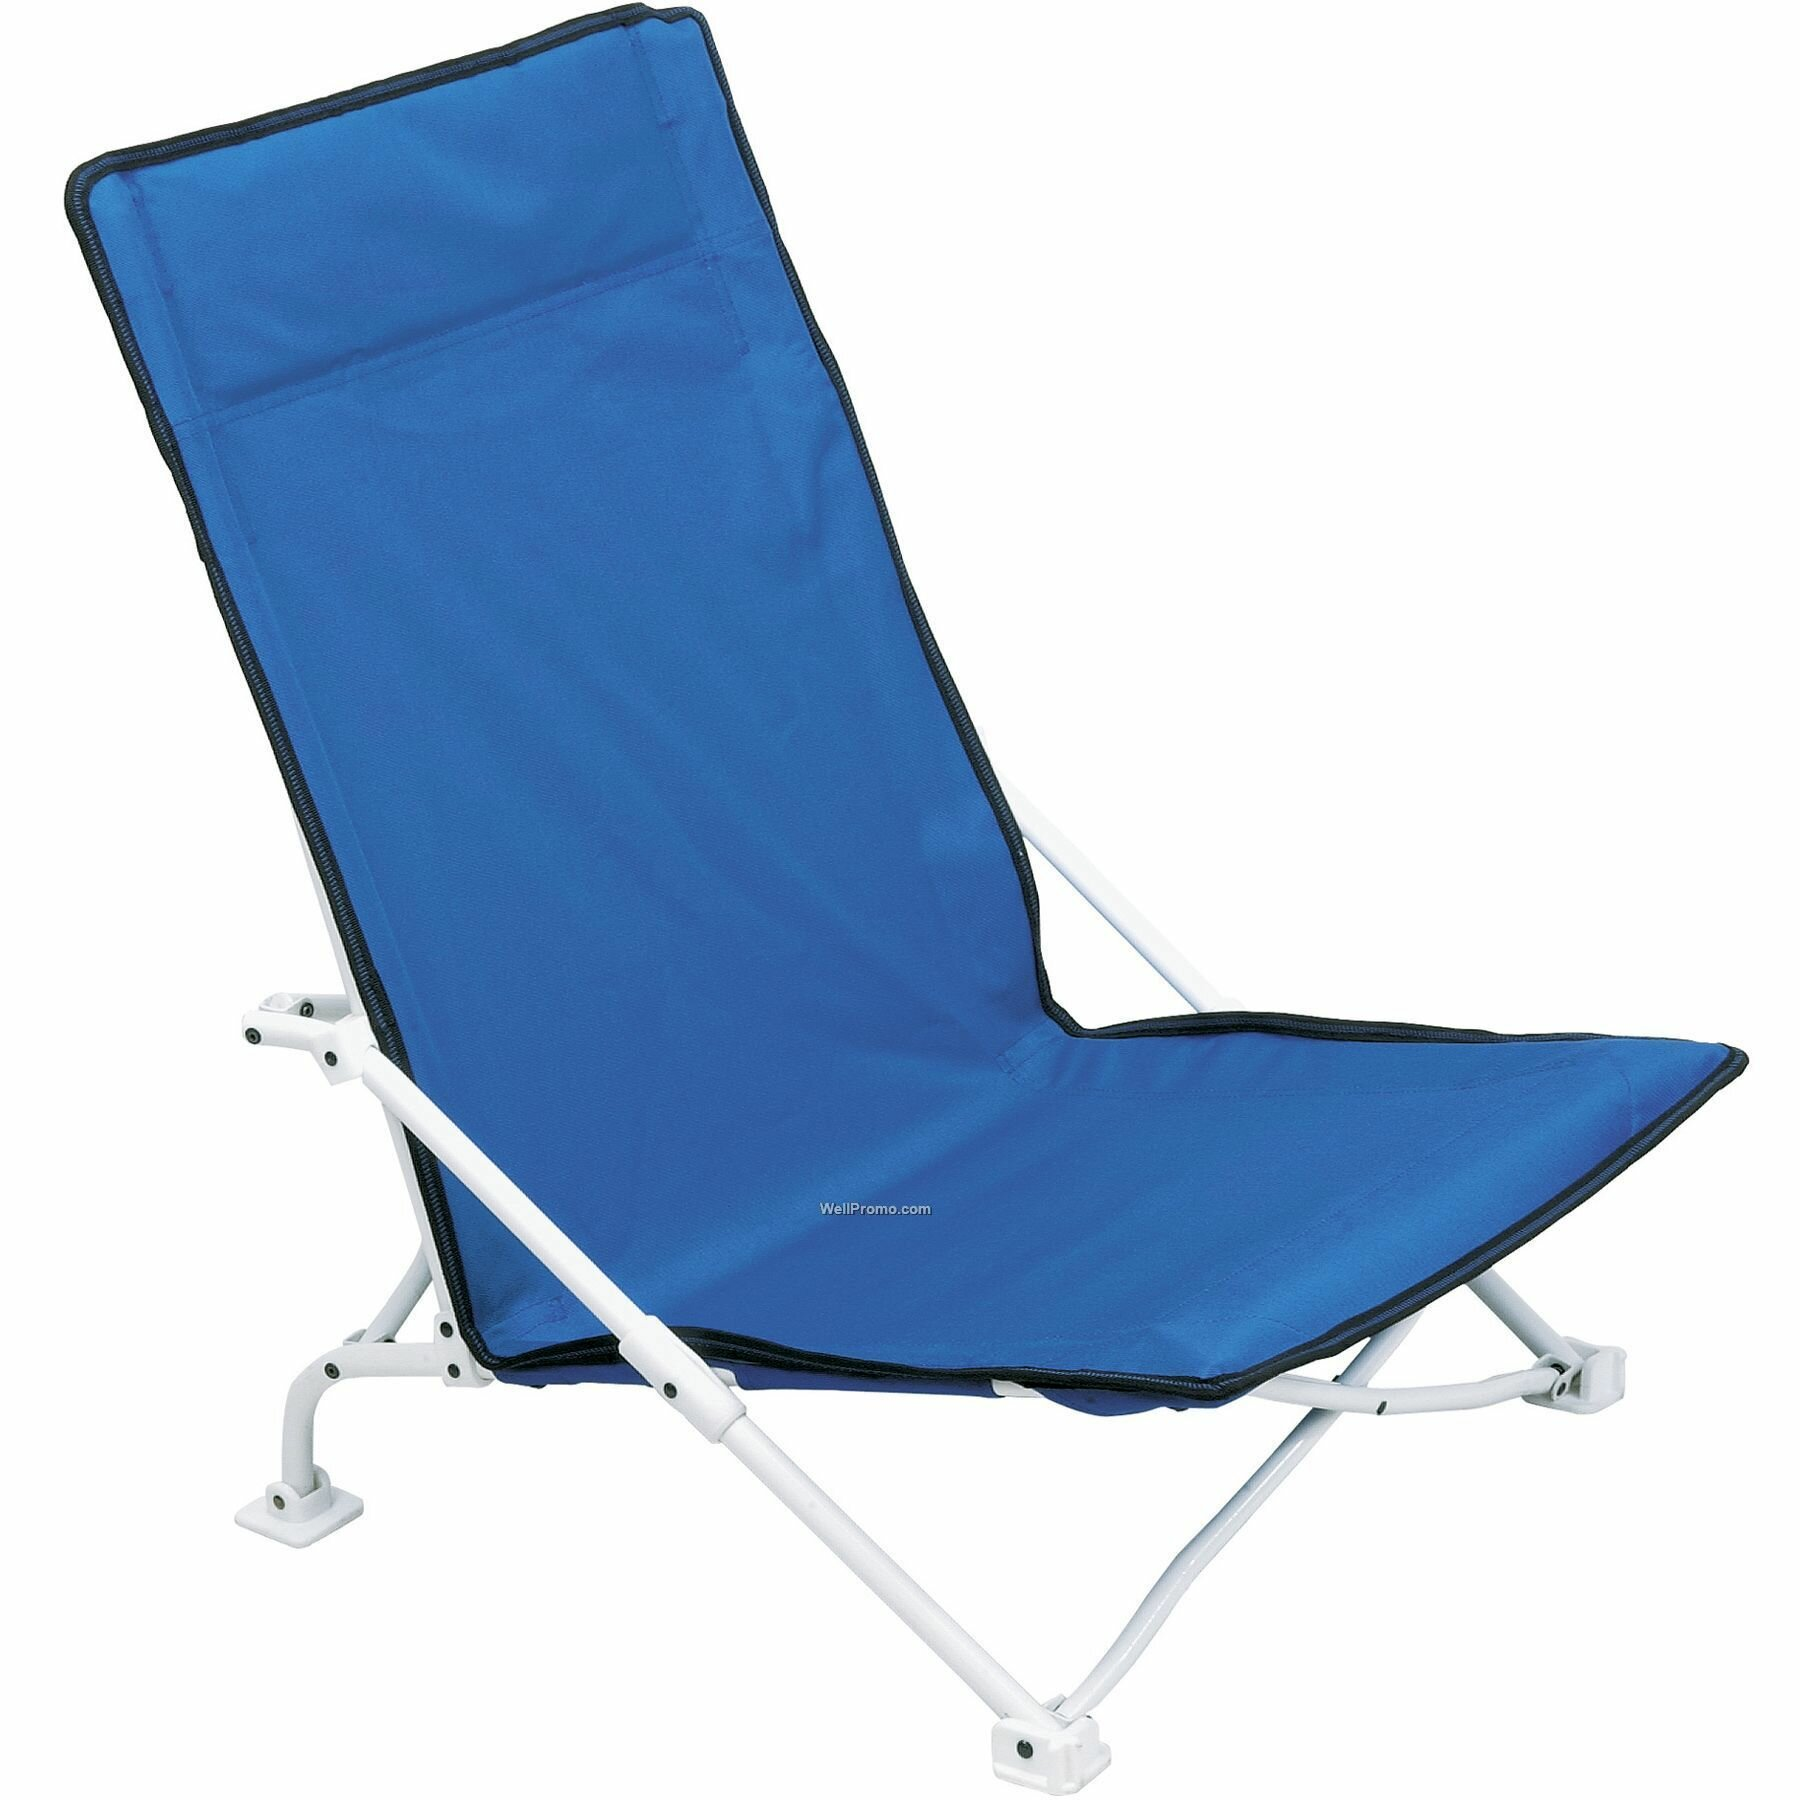 Small Fold Up Beach Chairs | Tri Fold Beach Chair | Folding Reclining Beach Chair